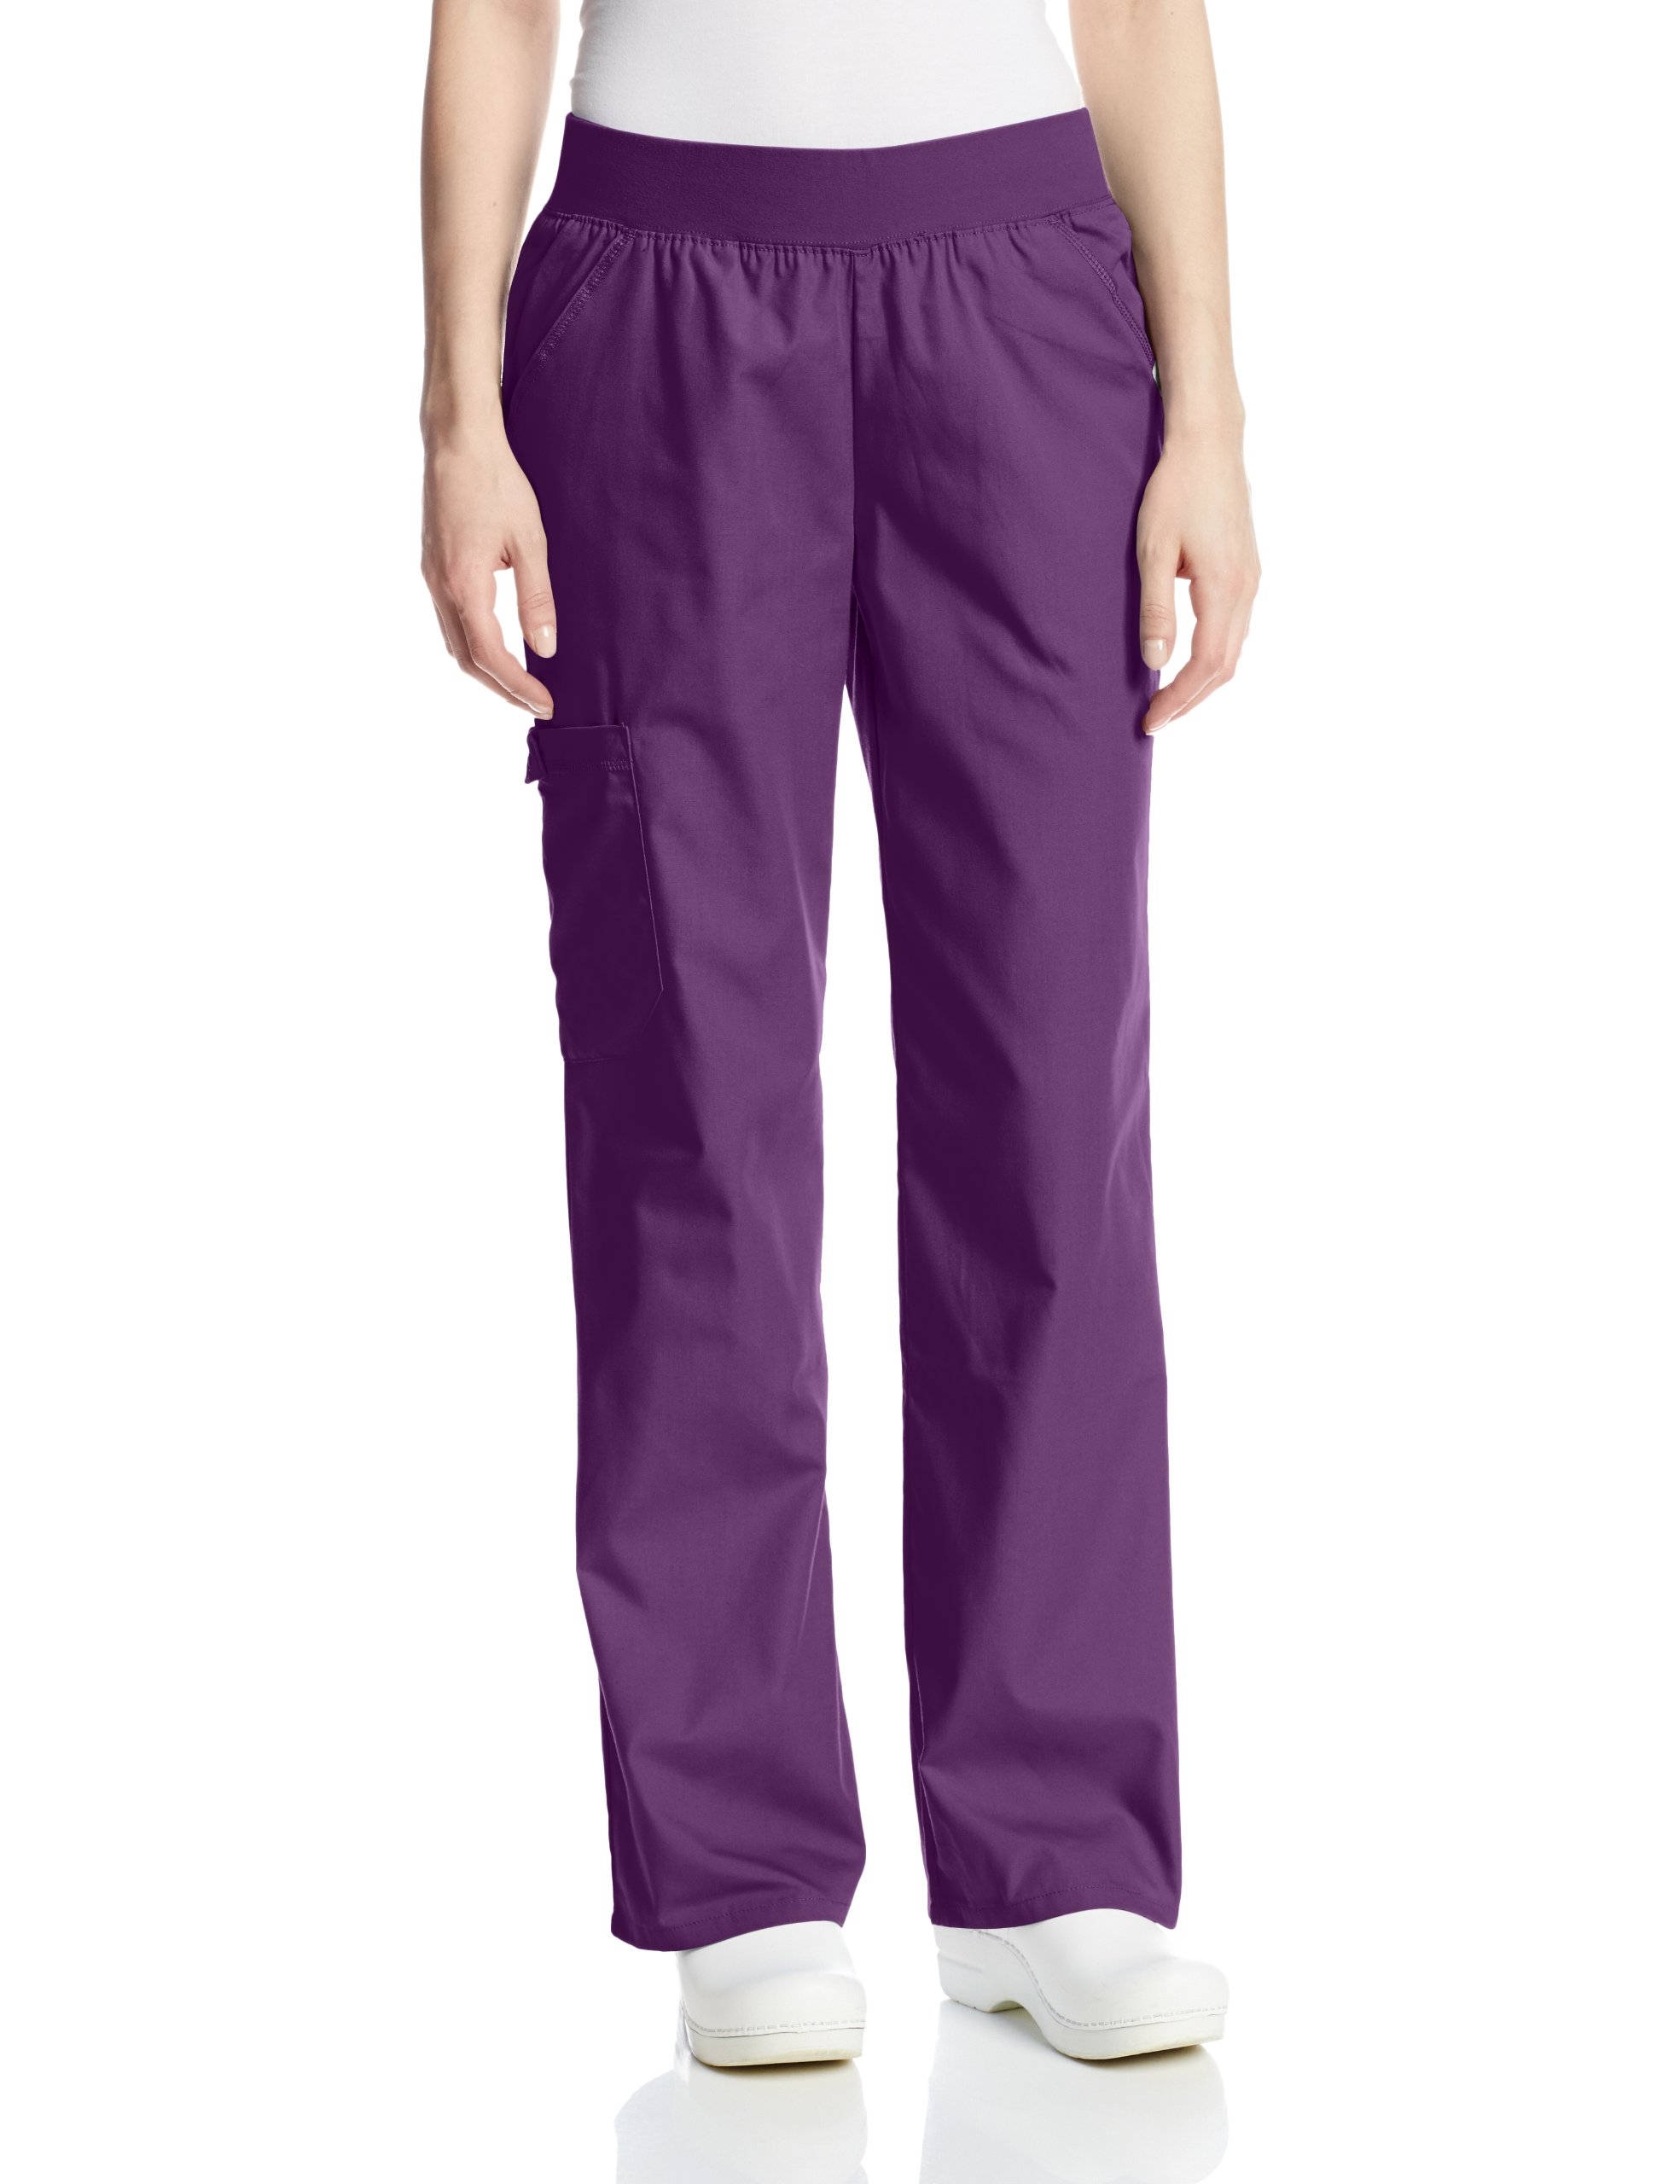 Cherokee Women's Scrubs Flexibles Mid-Rise Knit Waist Pull-On Missy Fit Pant, Eggplant, X-Large